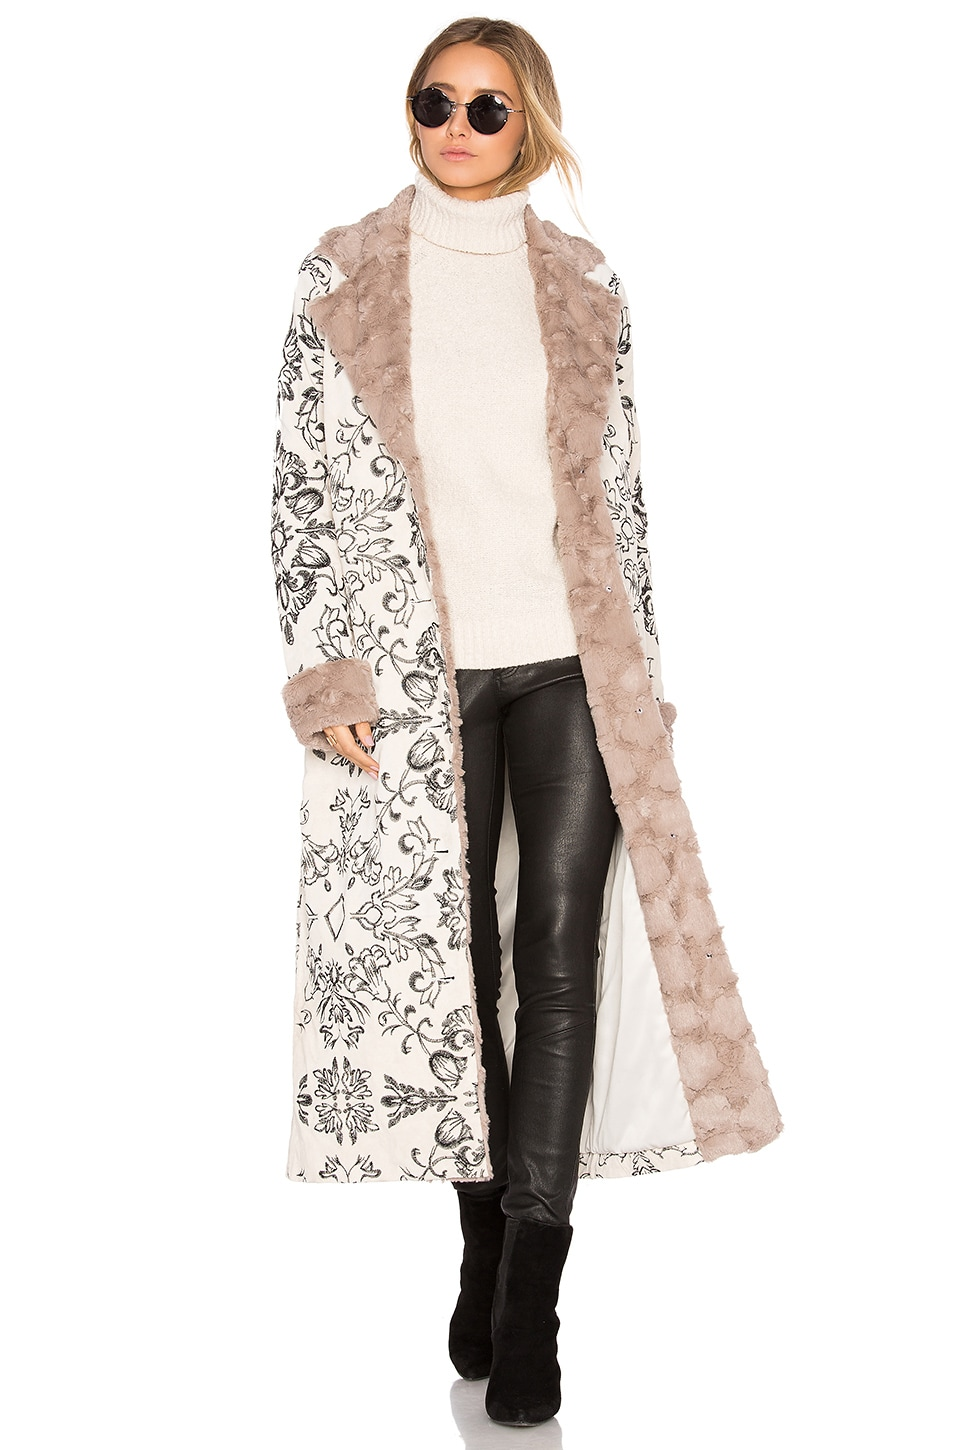 House of Harlow 1960 x REVOLVE Margeaux Coat with Faux Fur in Cream